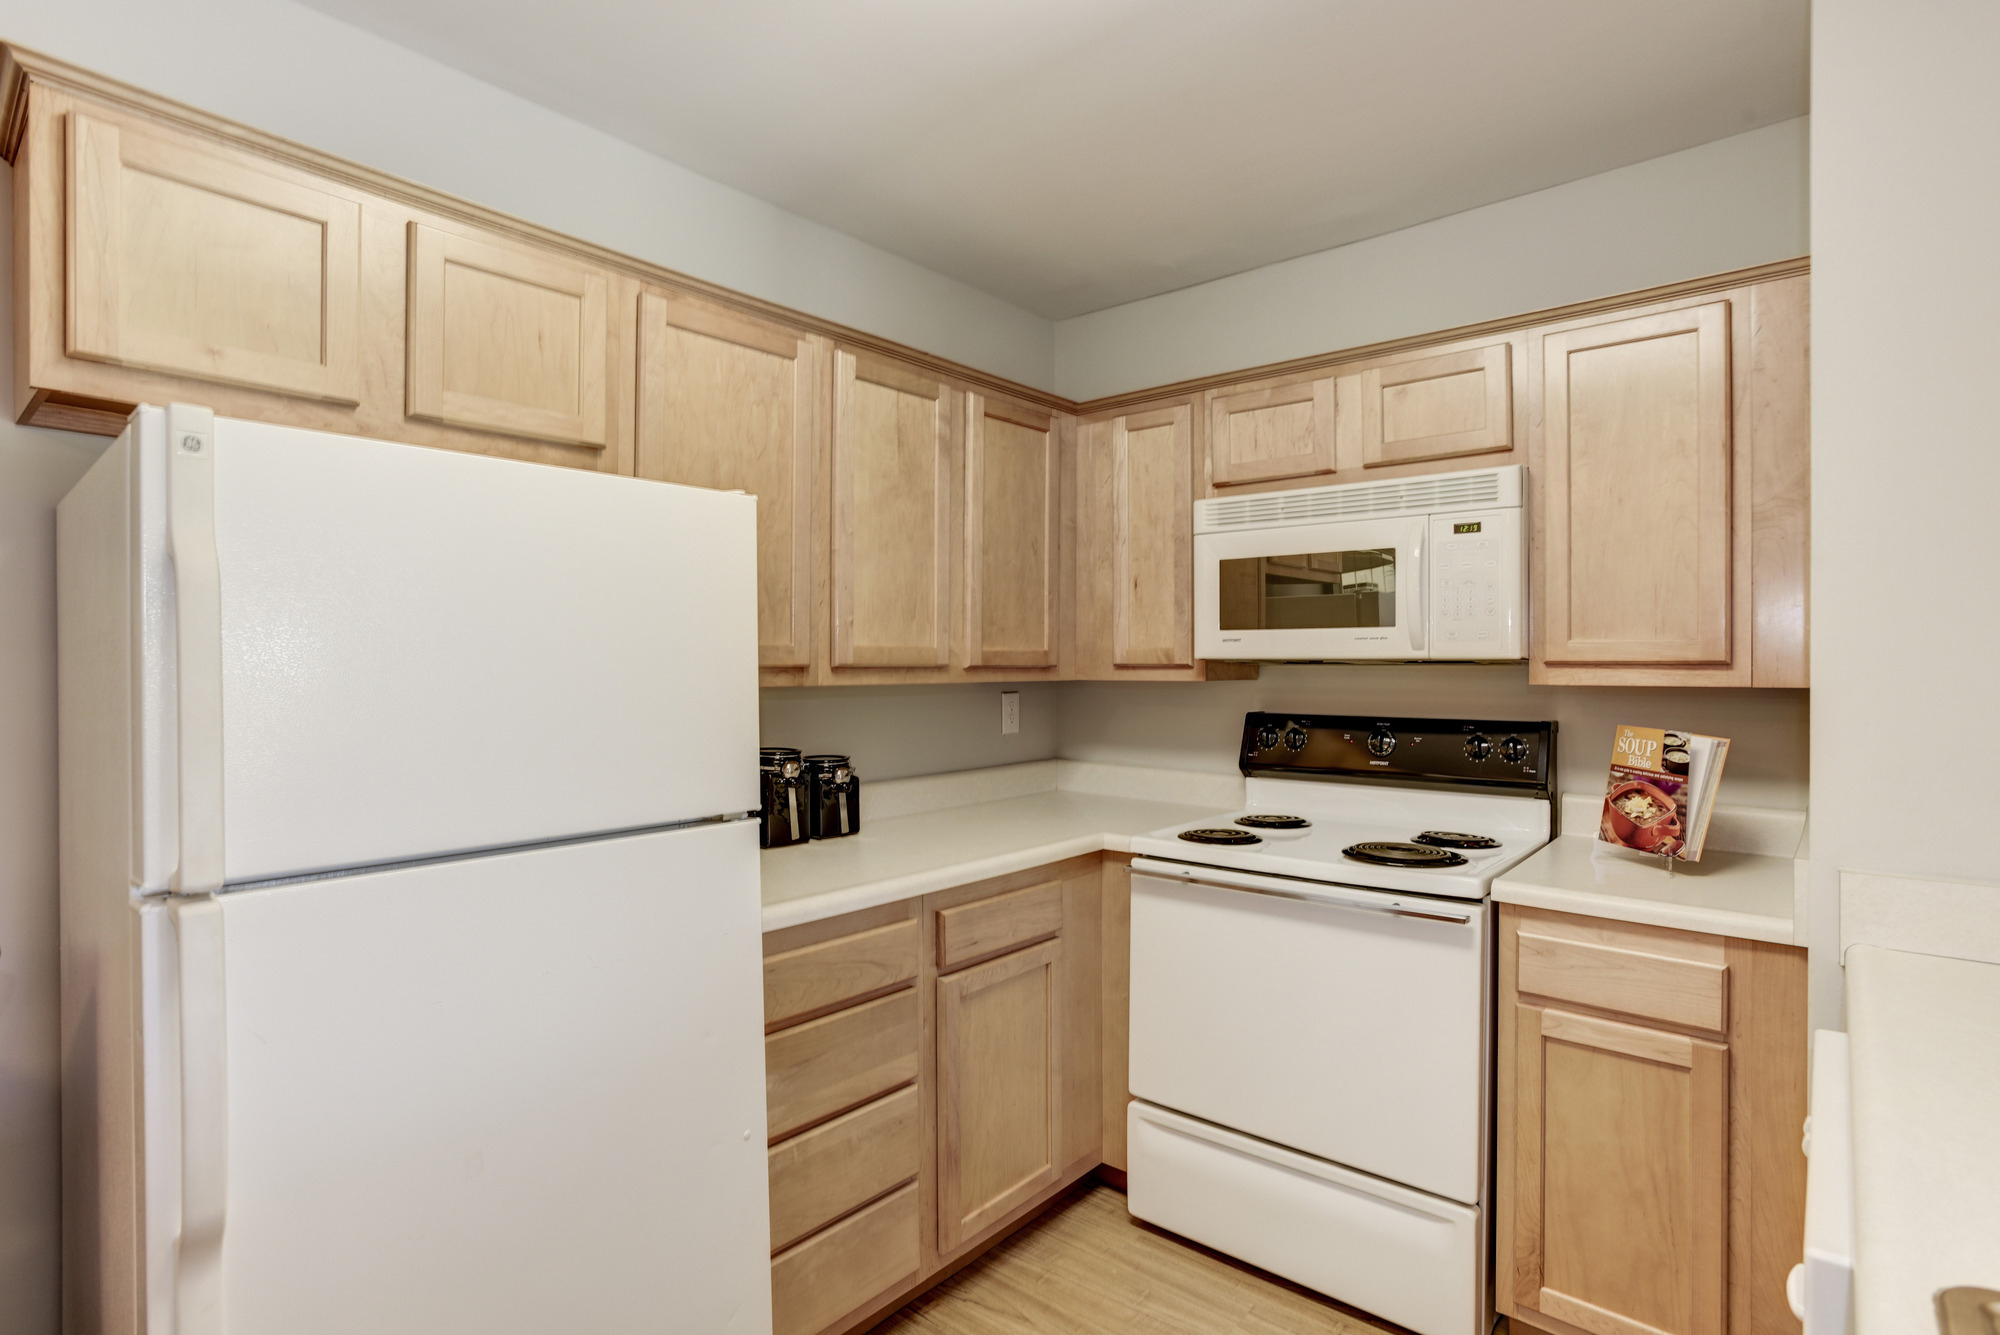 Fox Run Apartments in Edgewood, MD 21040:Fully Equipped Kitchen